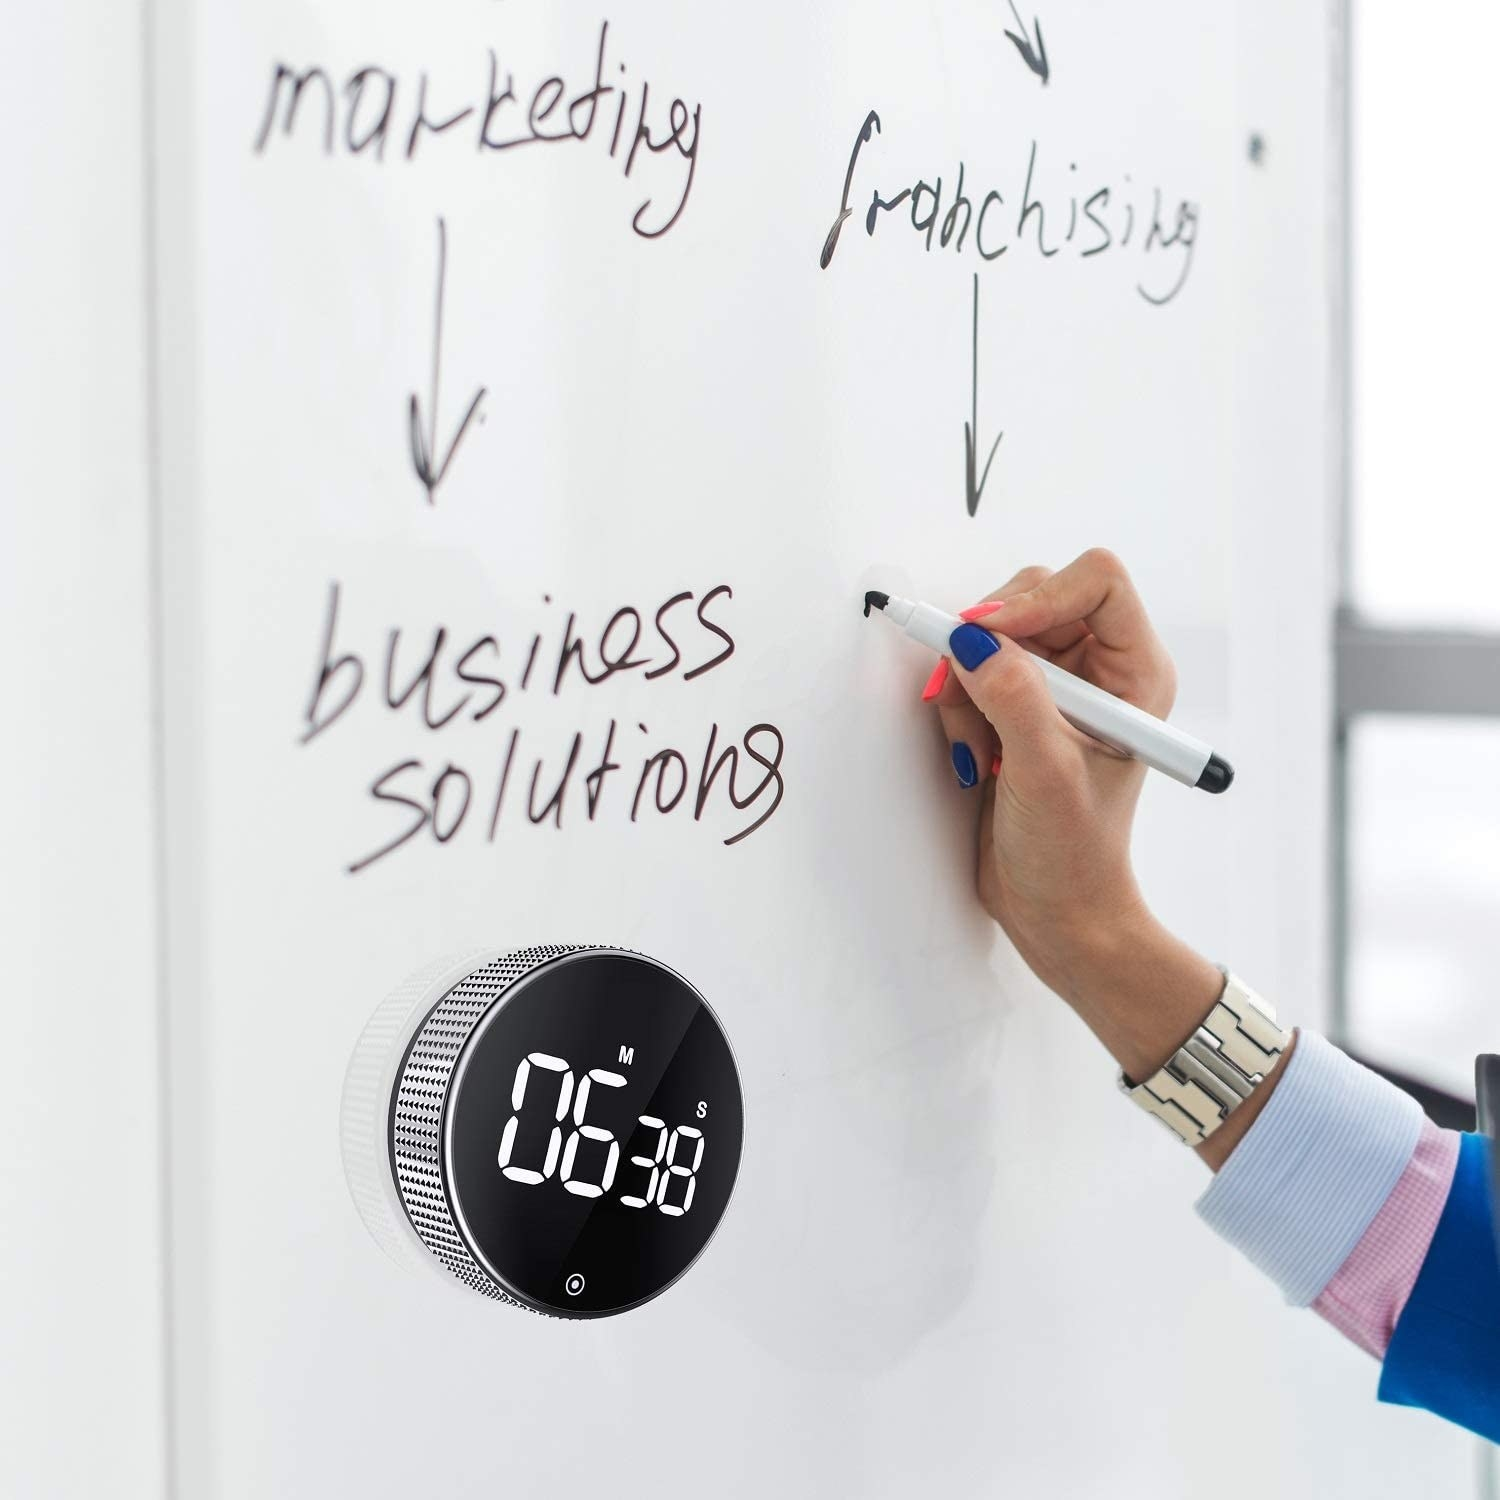 A person writing on a blackboard that has the timer attached to it